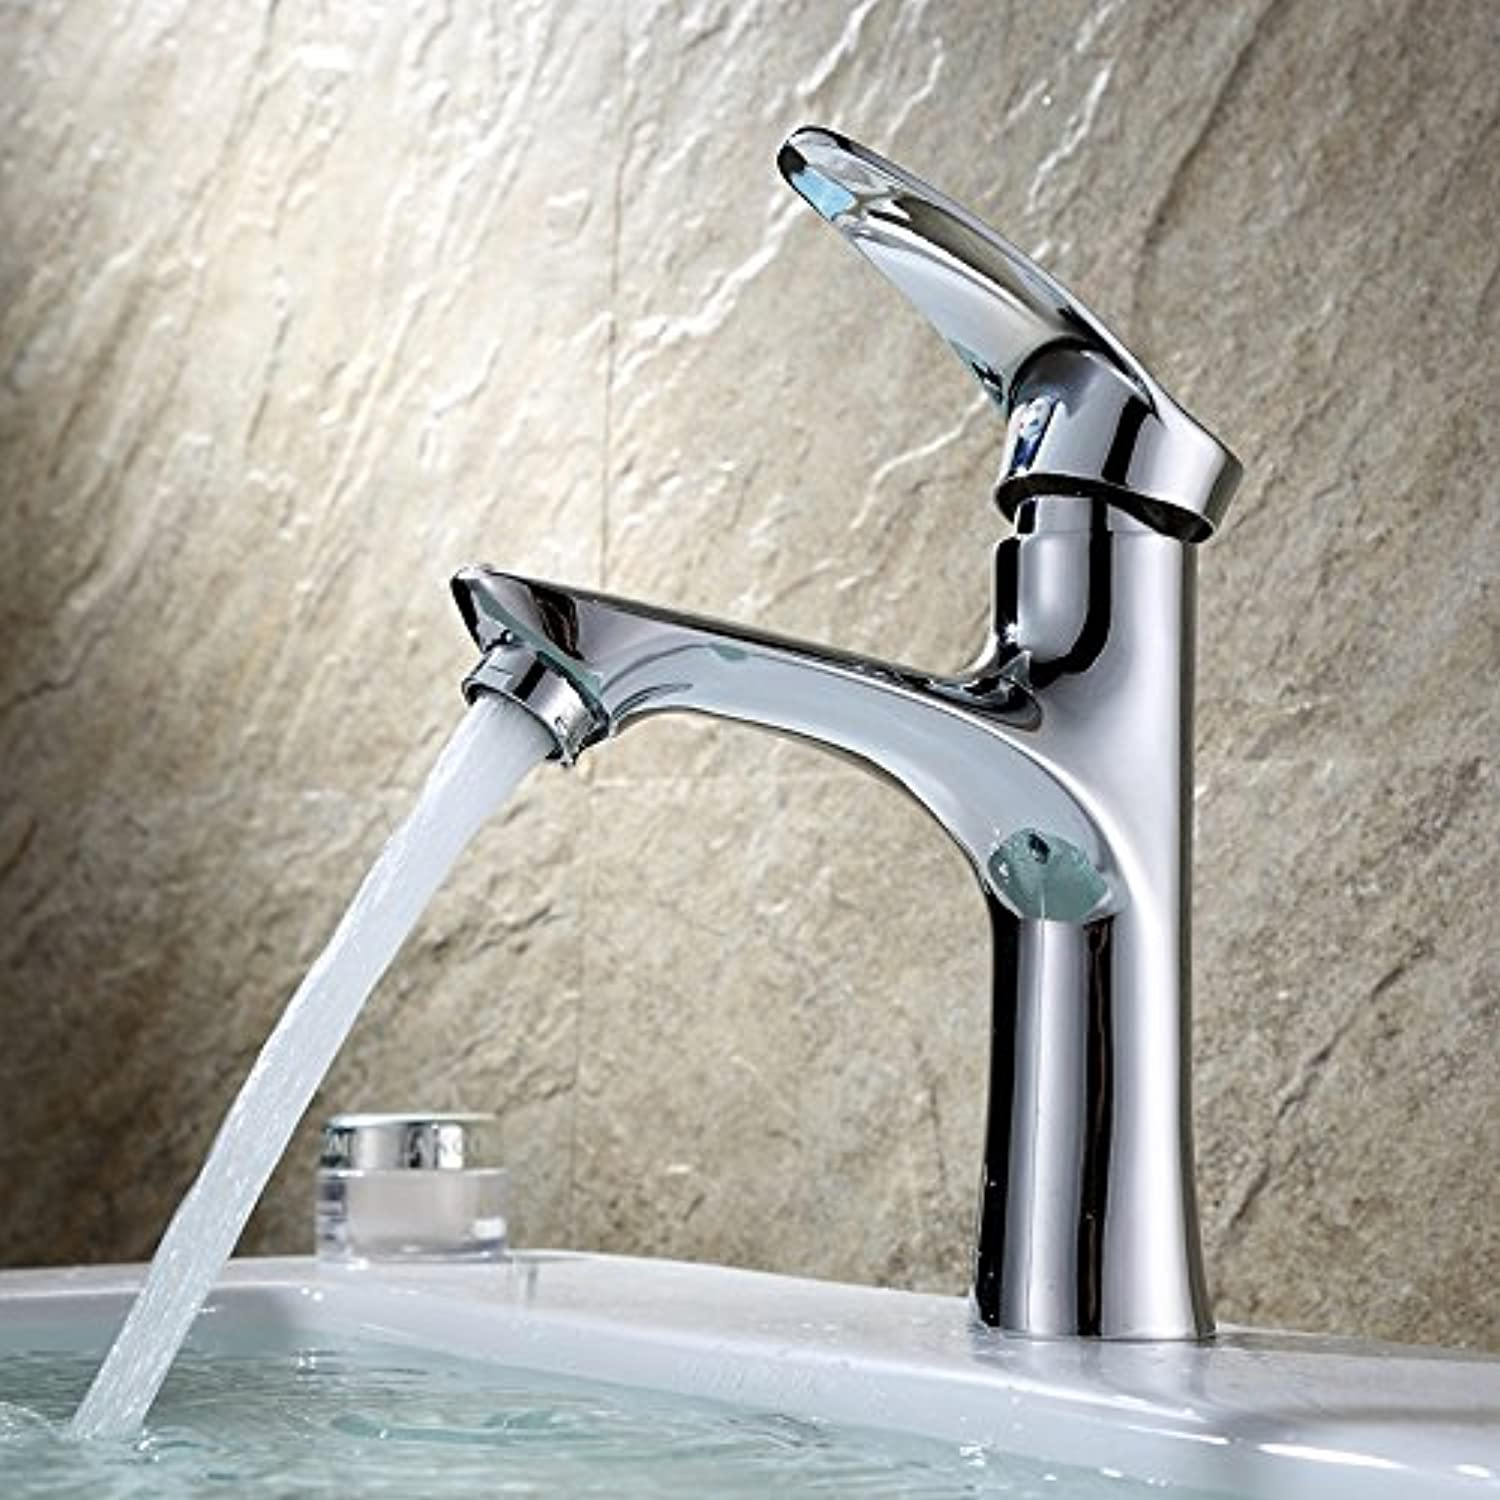 Bathroom Sink Basin Lever Mixer Tap Facebasin Cold and Hot Water Faucet Bathroom Basin Cold and Hot Water Faucet Modern Simple Bathroom Cabinet Stainless Steel